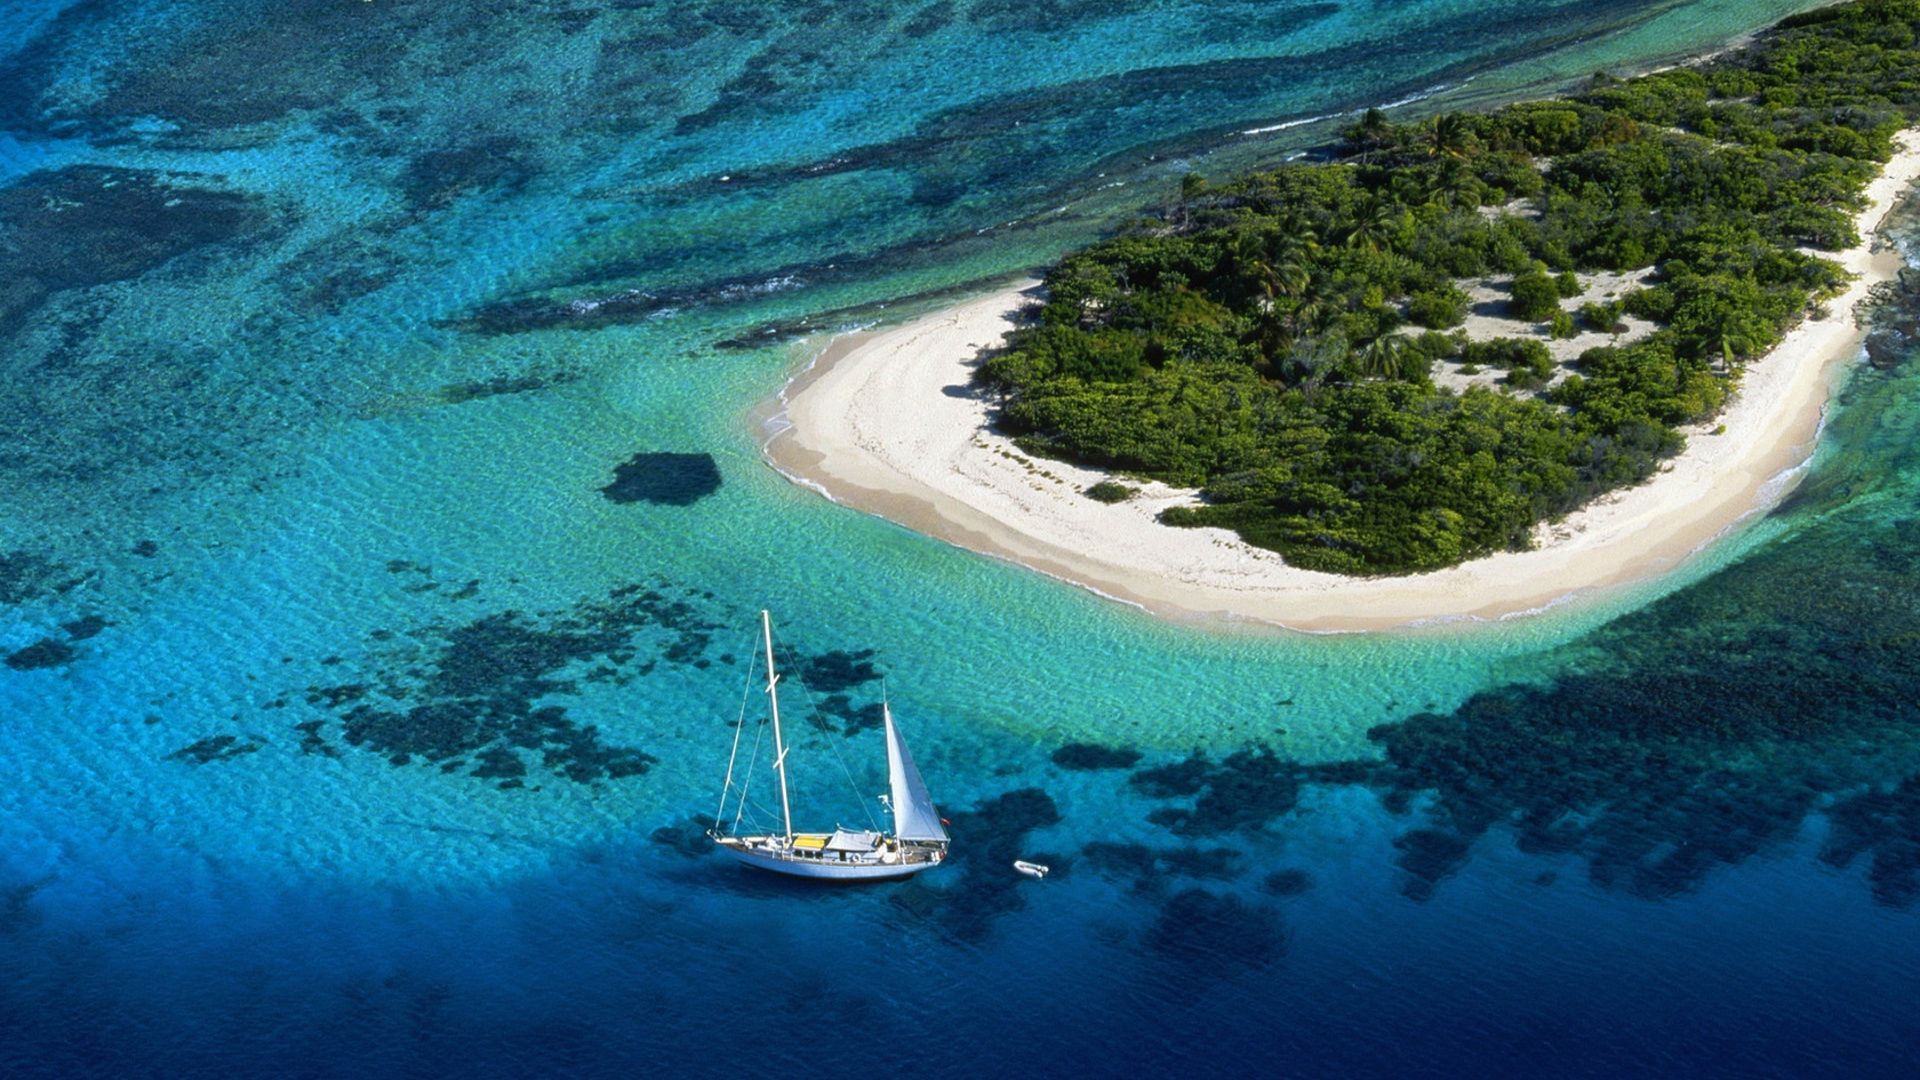 yacht_island_beach_bank_from_above_land_water_azure_60859_1920x1080